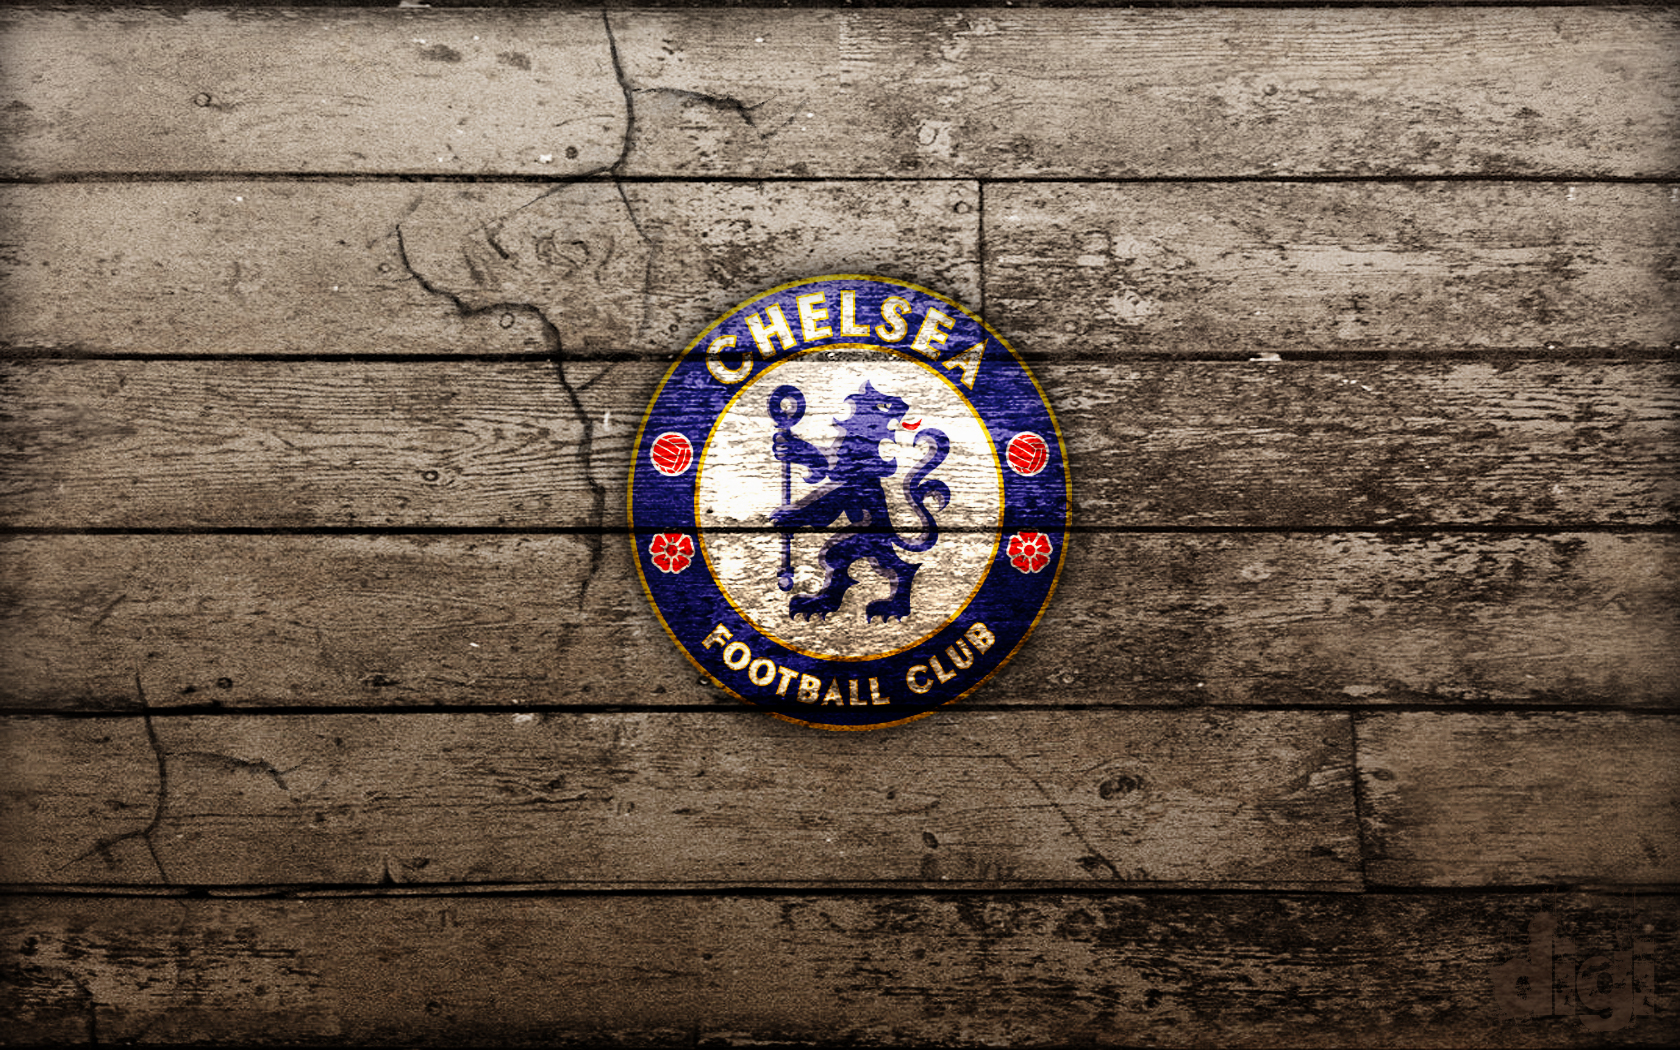 Awesome Chelsea FC Wallpaper That Will Revitalize Any Desktop | Thomas ...  Chelsea Fc